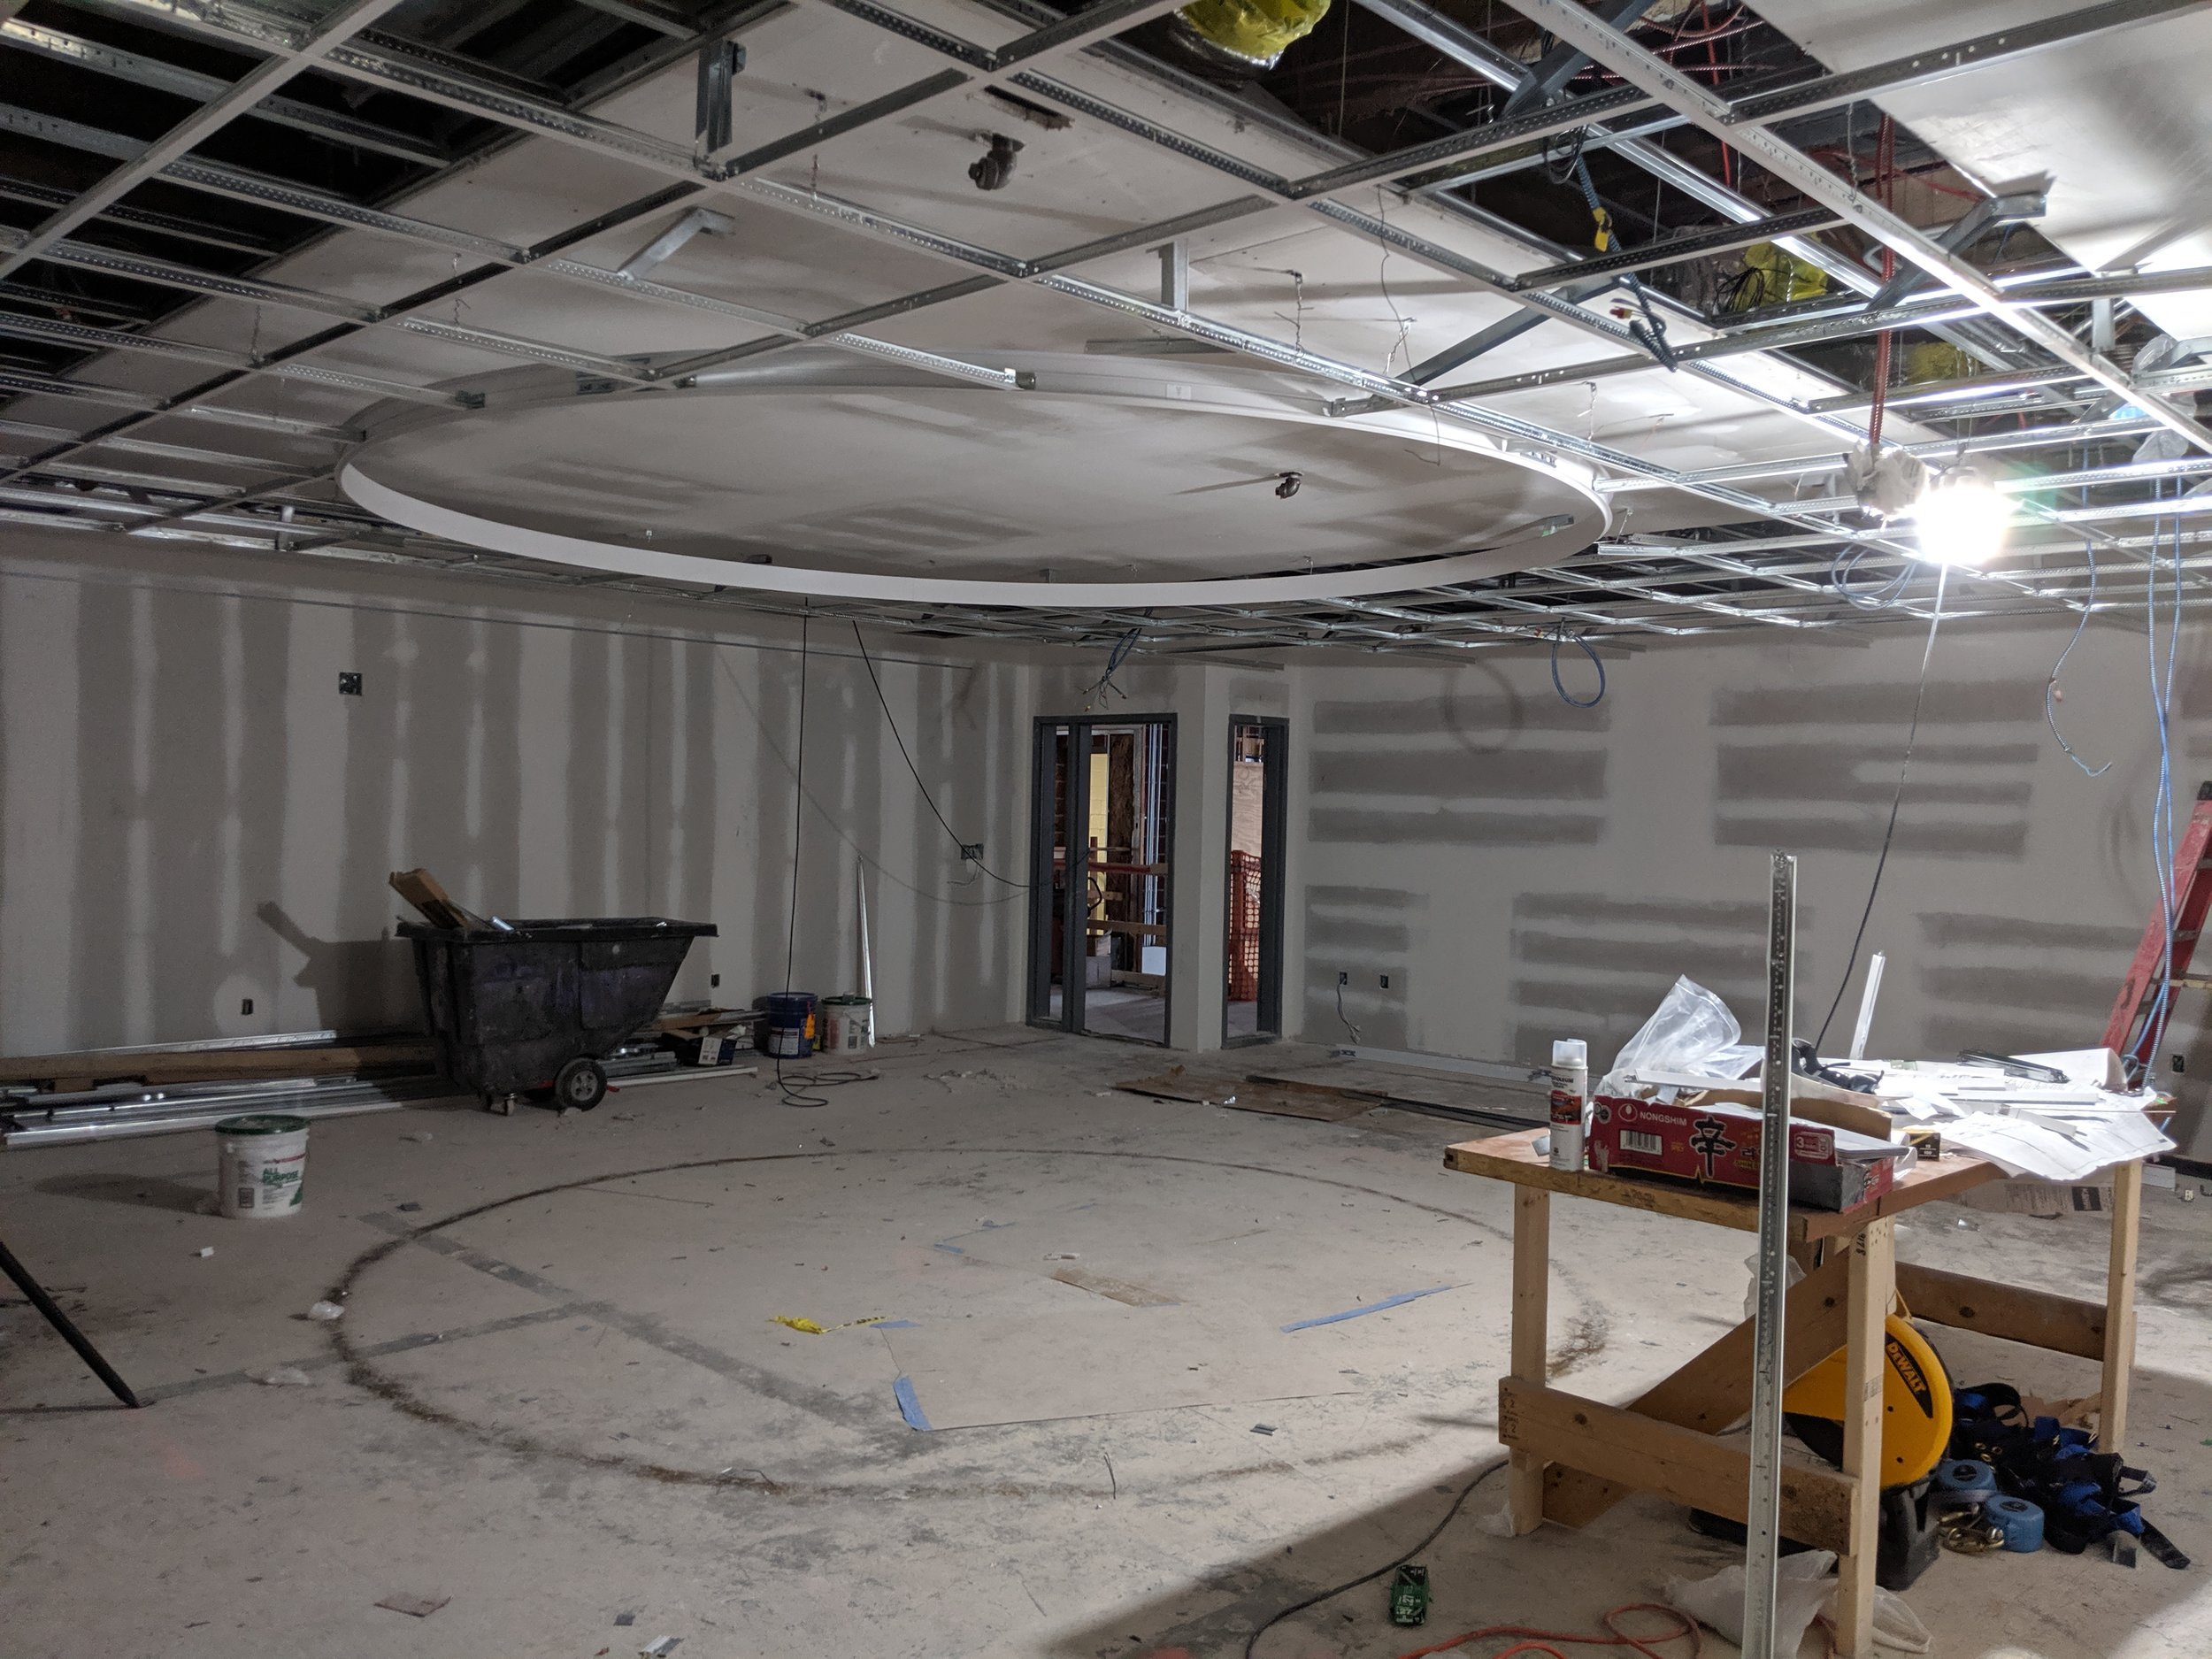 June 2019  - Inside the Event Room, a circular LED lighting fixture will be a central feature in the new space. With color changing and dimming options, the Event Room will be transformed for community events, special dinners, readings, and much more.